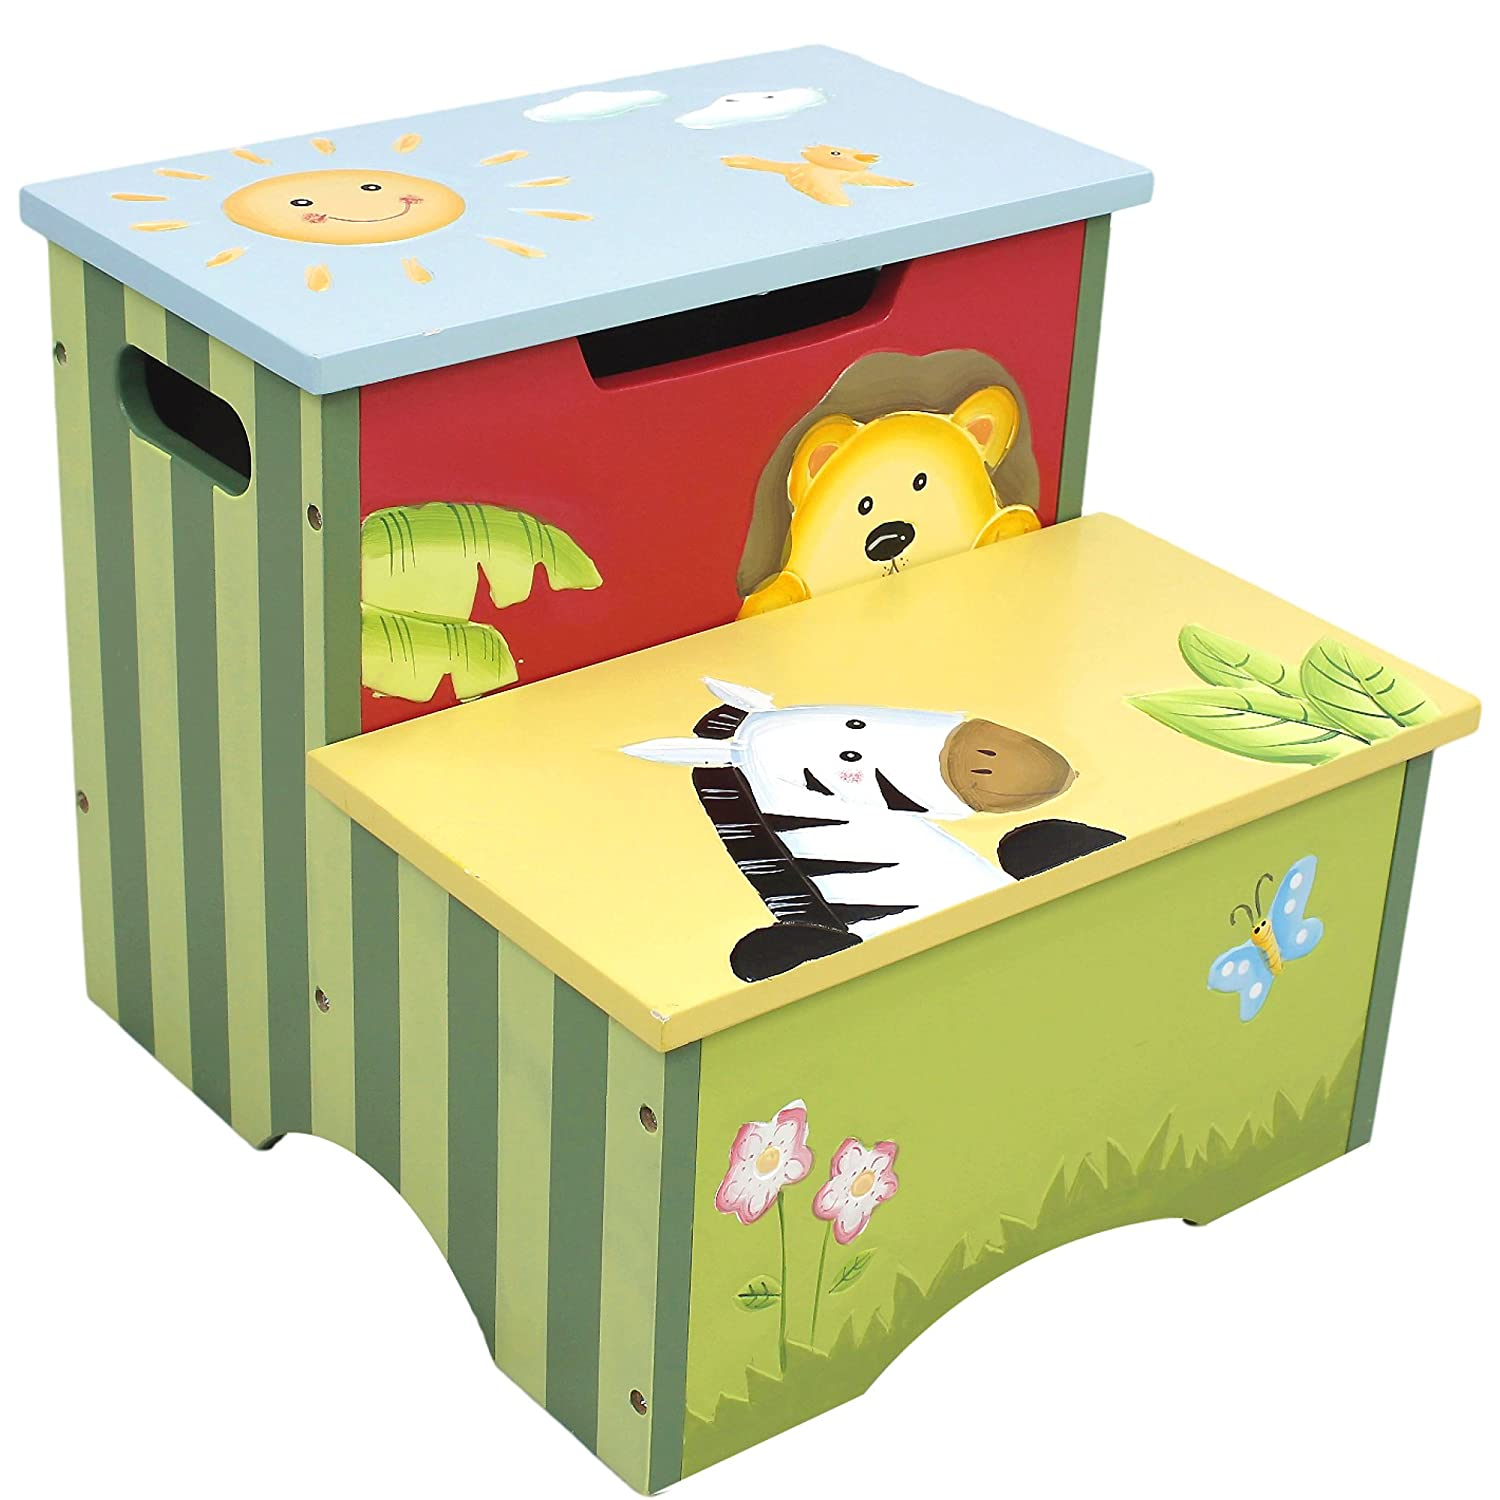 Kids wooden toy chest sunny safari - Amazon Com Fantasy Fields Sunny Safari Animals Thematic Kids Wooden Step Stool With Storage Imagination Inspiring Hand Crafted Hand Painted Details